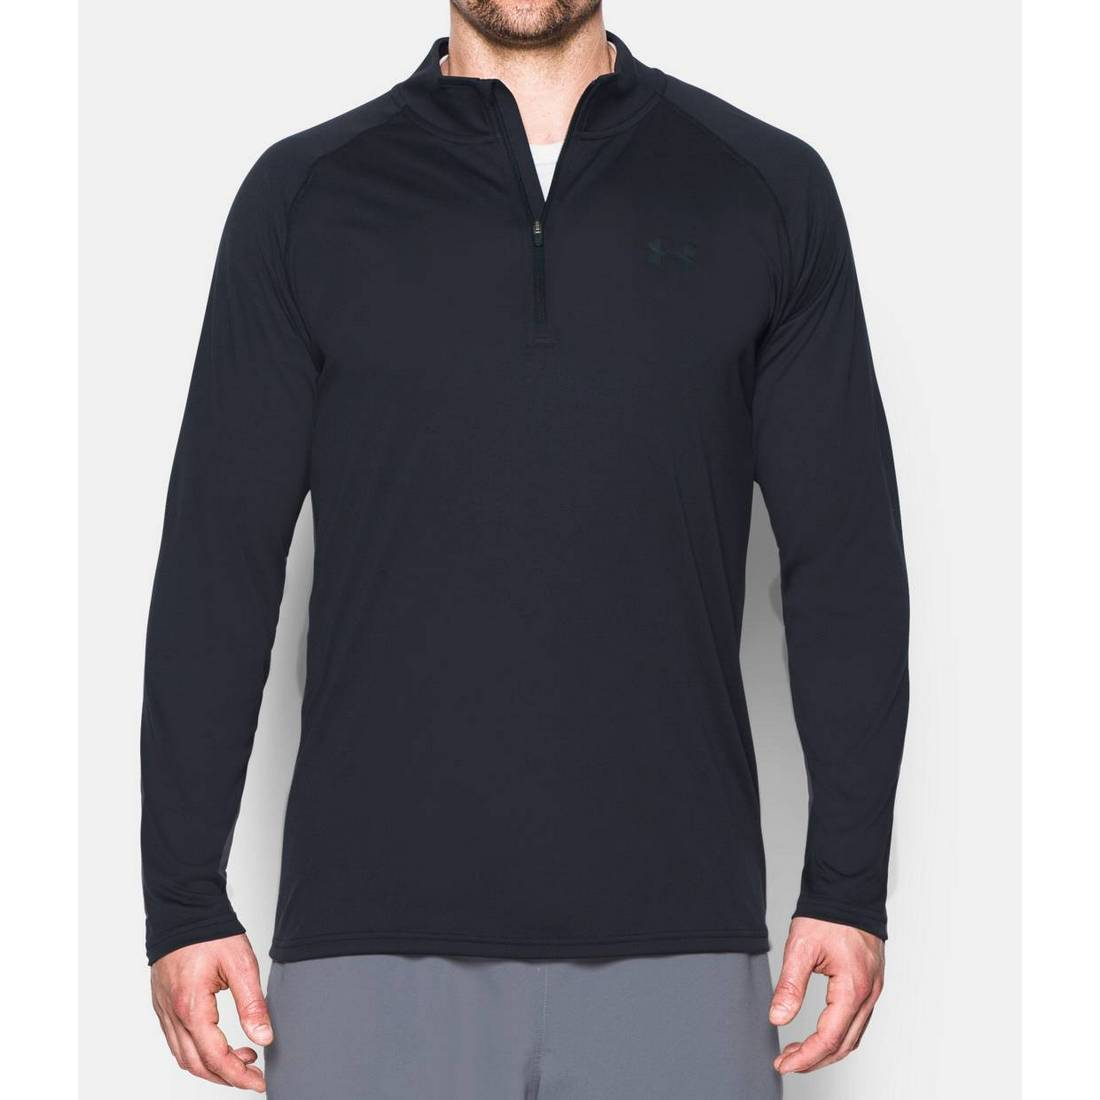 Under Armour 1285765 Tactical Tech ¼ Zip Men's Tactical Long Sleeve